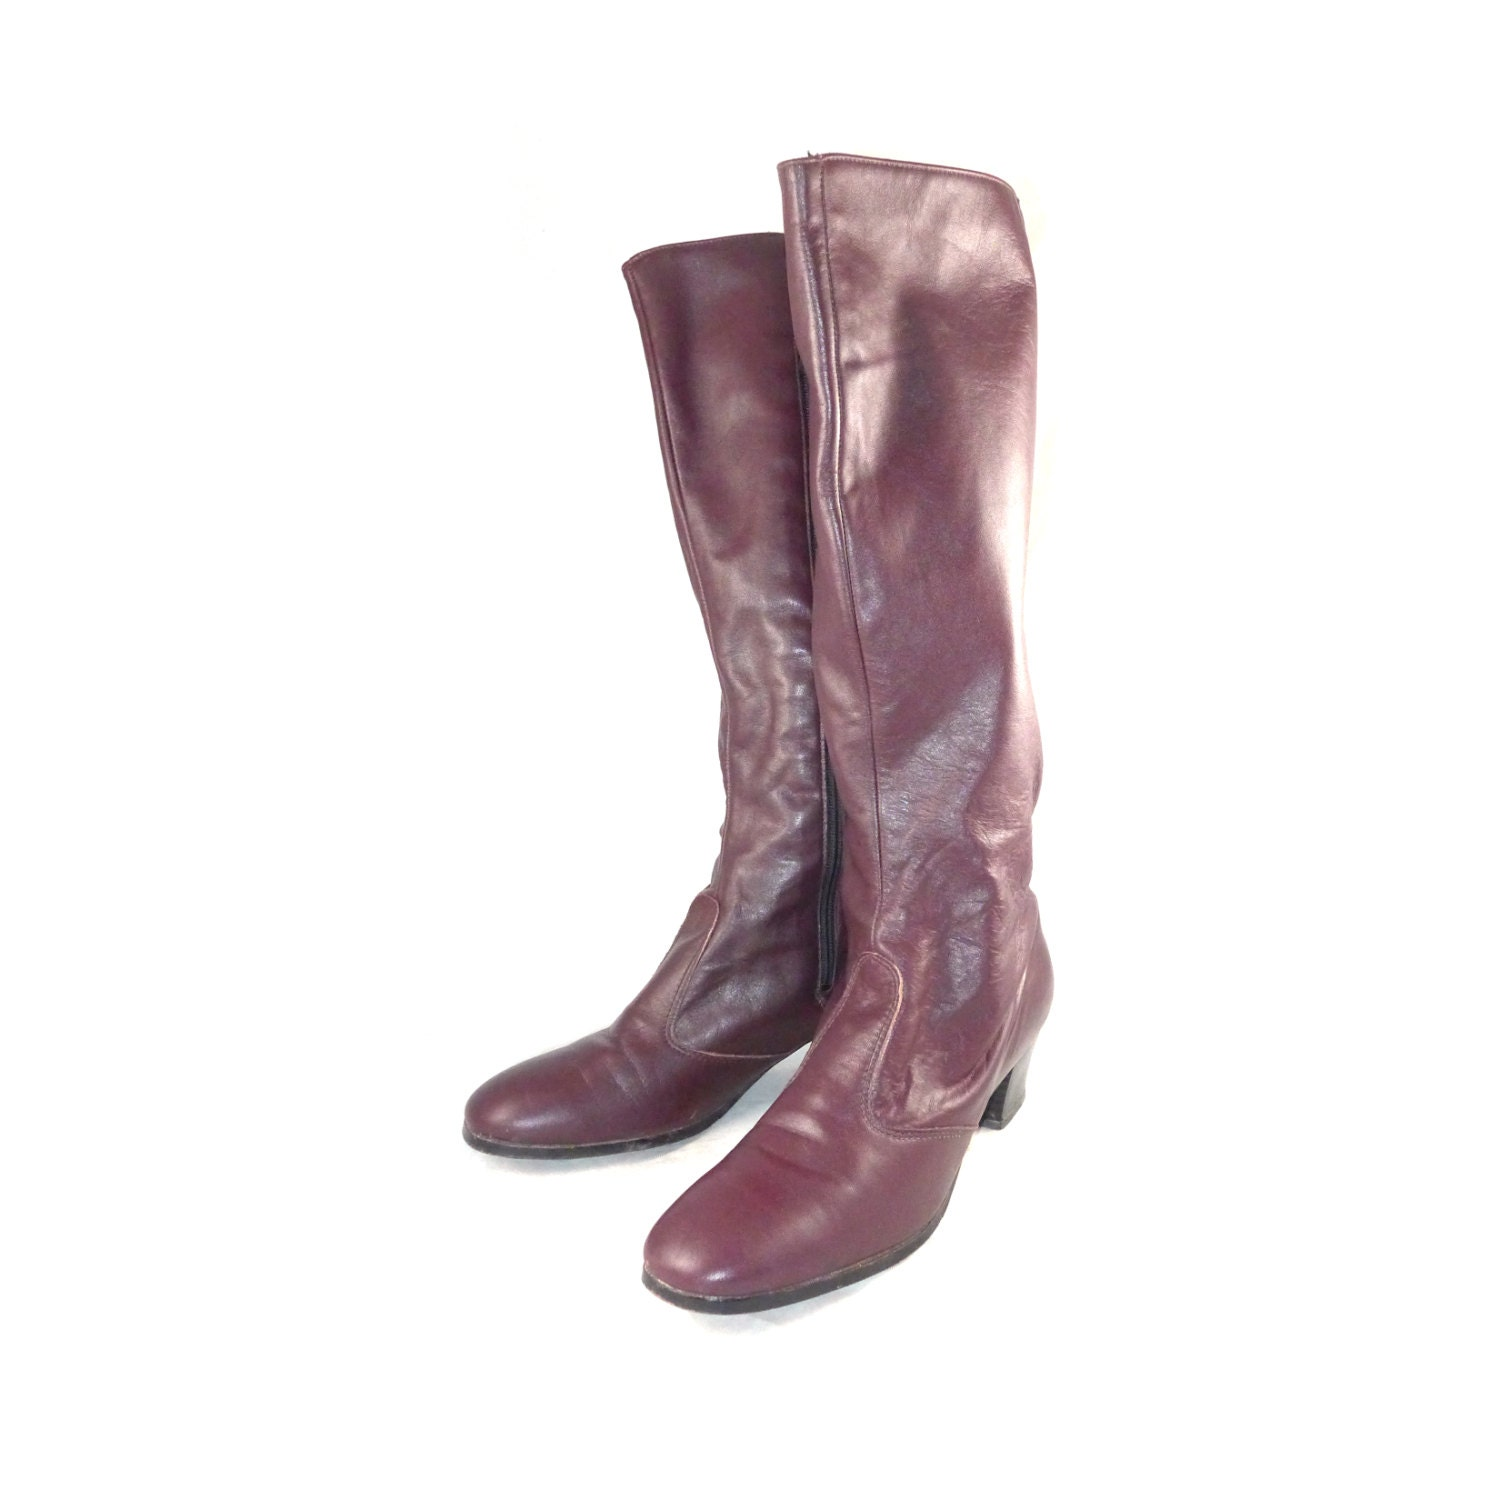 burgundy leather soft knee high boots by curatedcloset